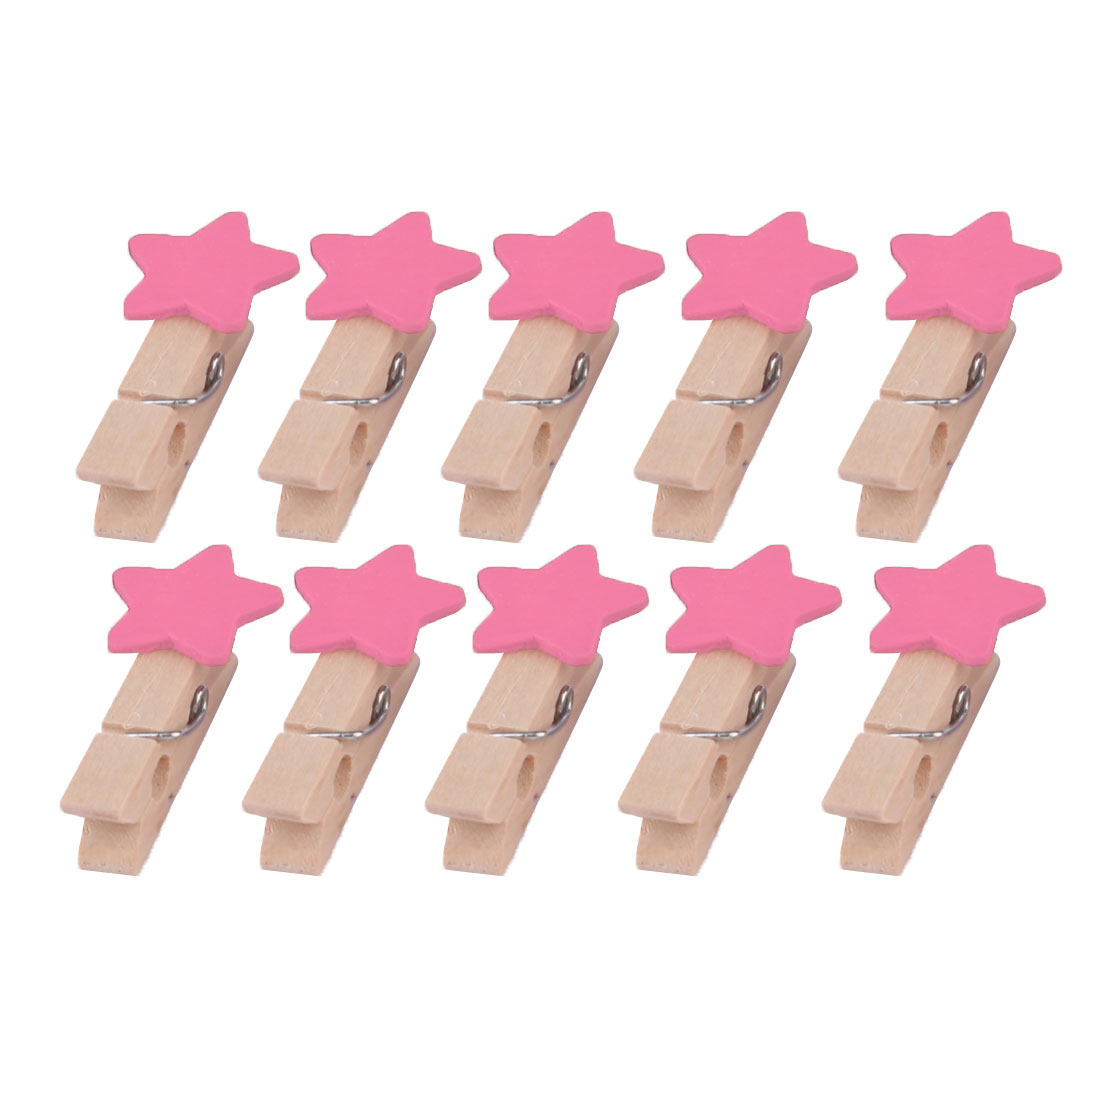 Home Wooden Star Shaped DIY Craft Photo Picture Post Card Decor Clip Pink 10pcs